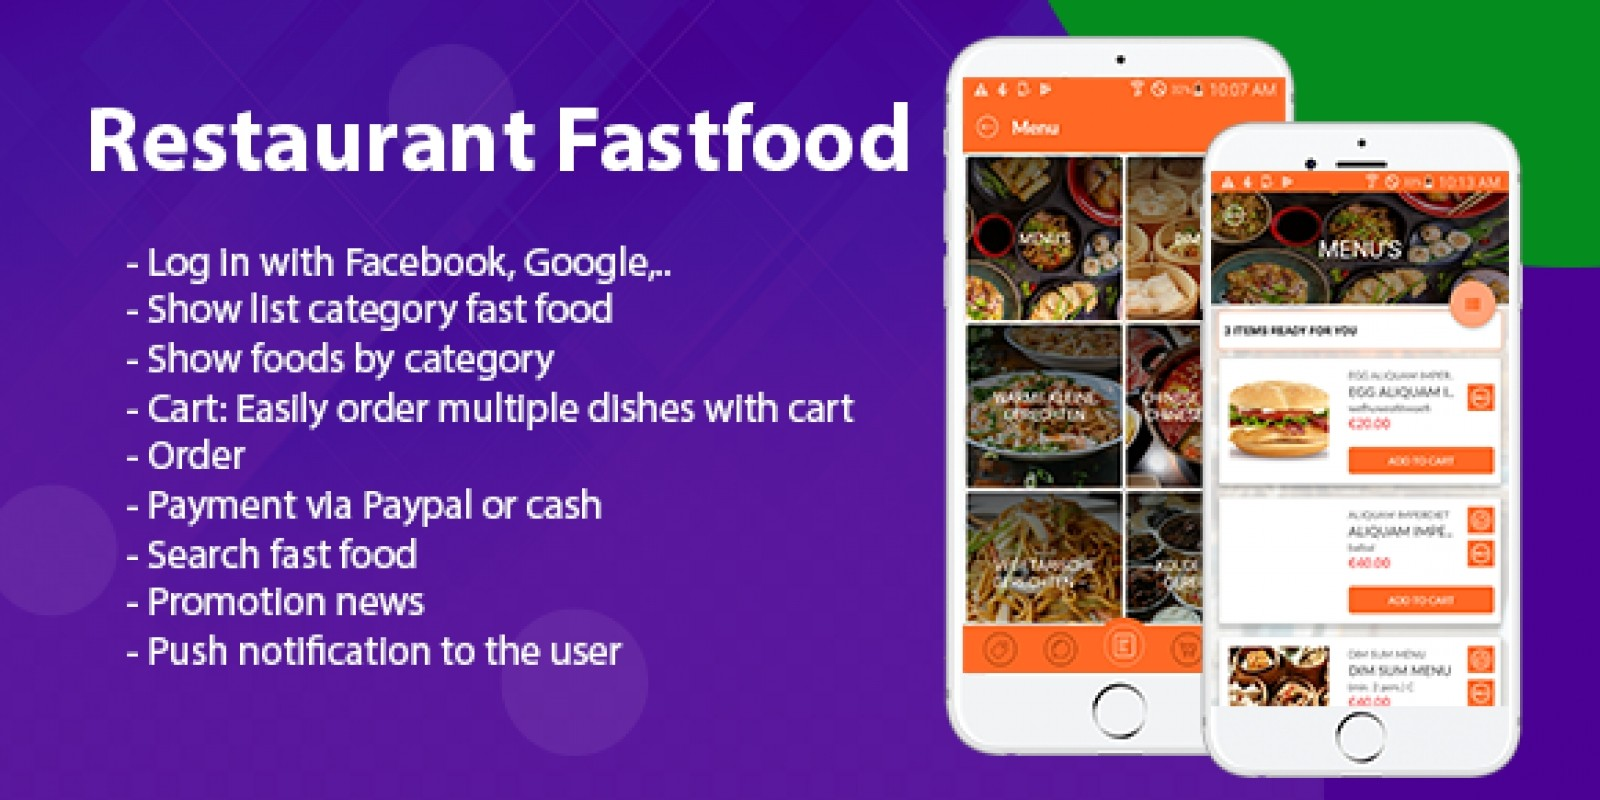 Restaurant Fastfood - Android App Source Code